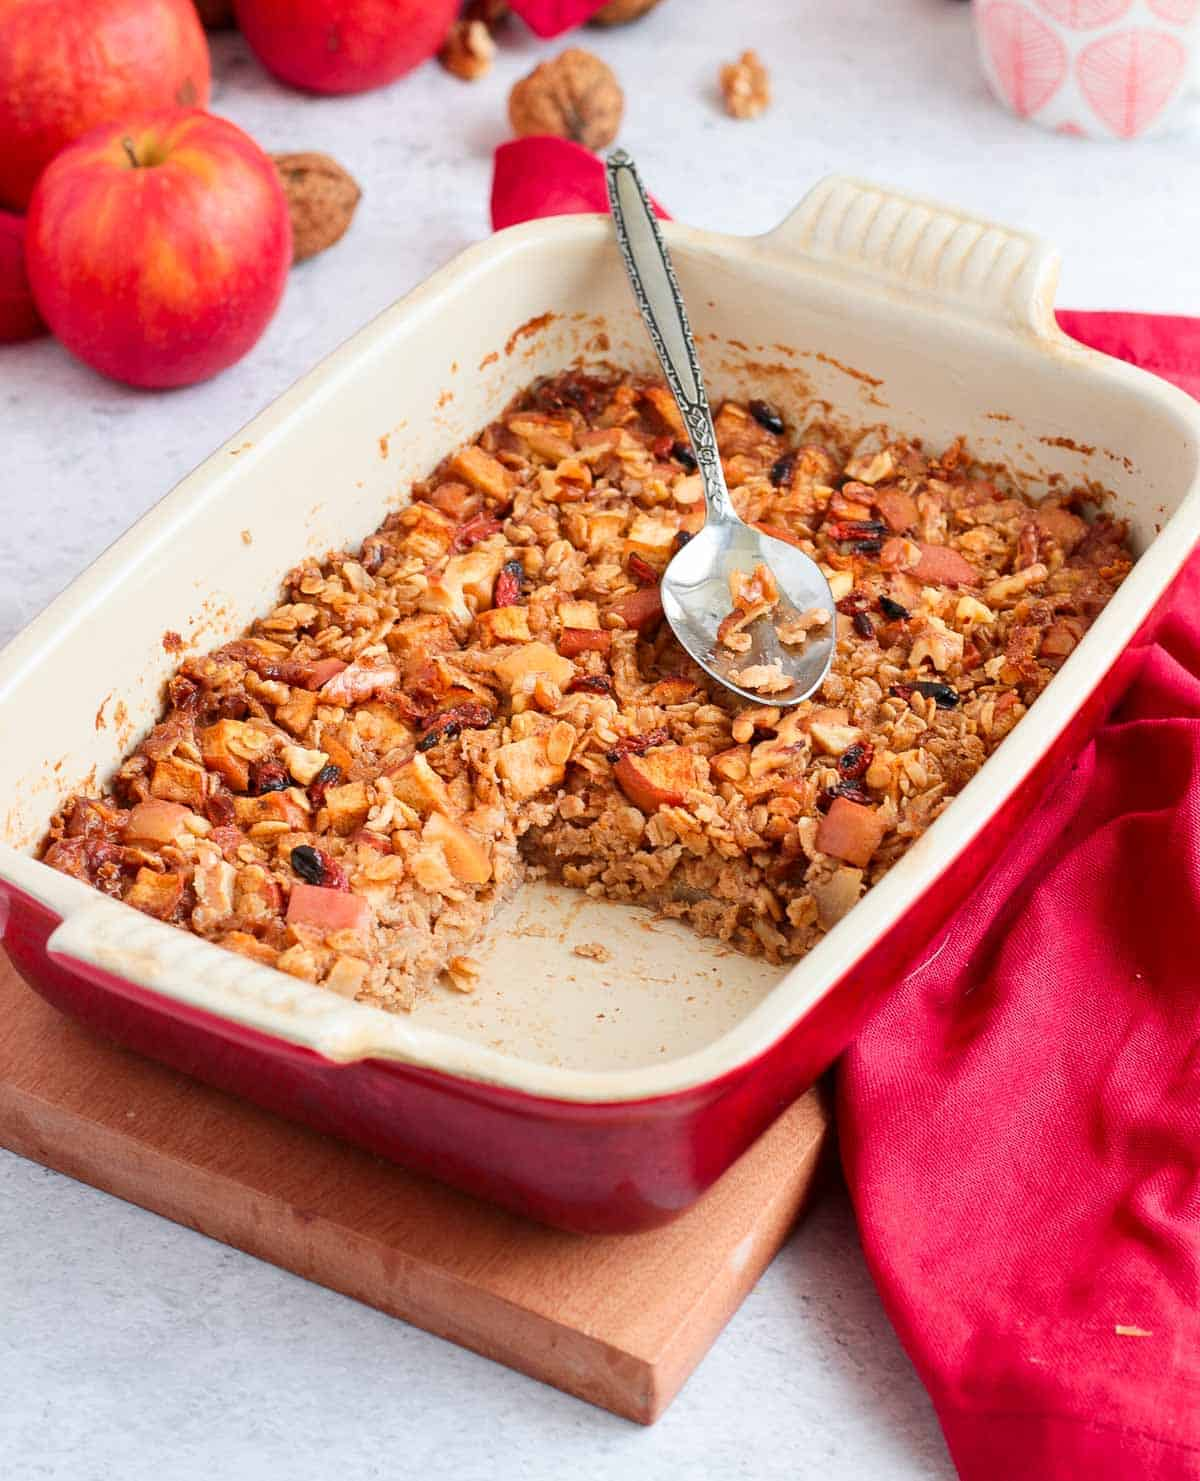 Baked Oatmeal in a white and red ceramic dish topped with a metallic spoon.